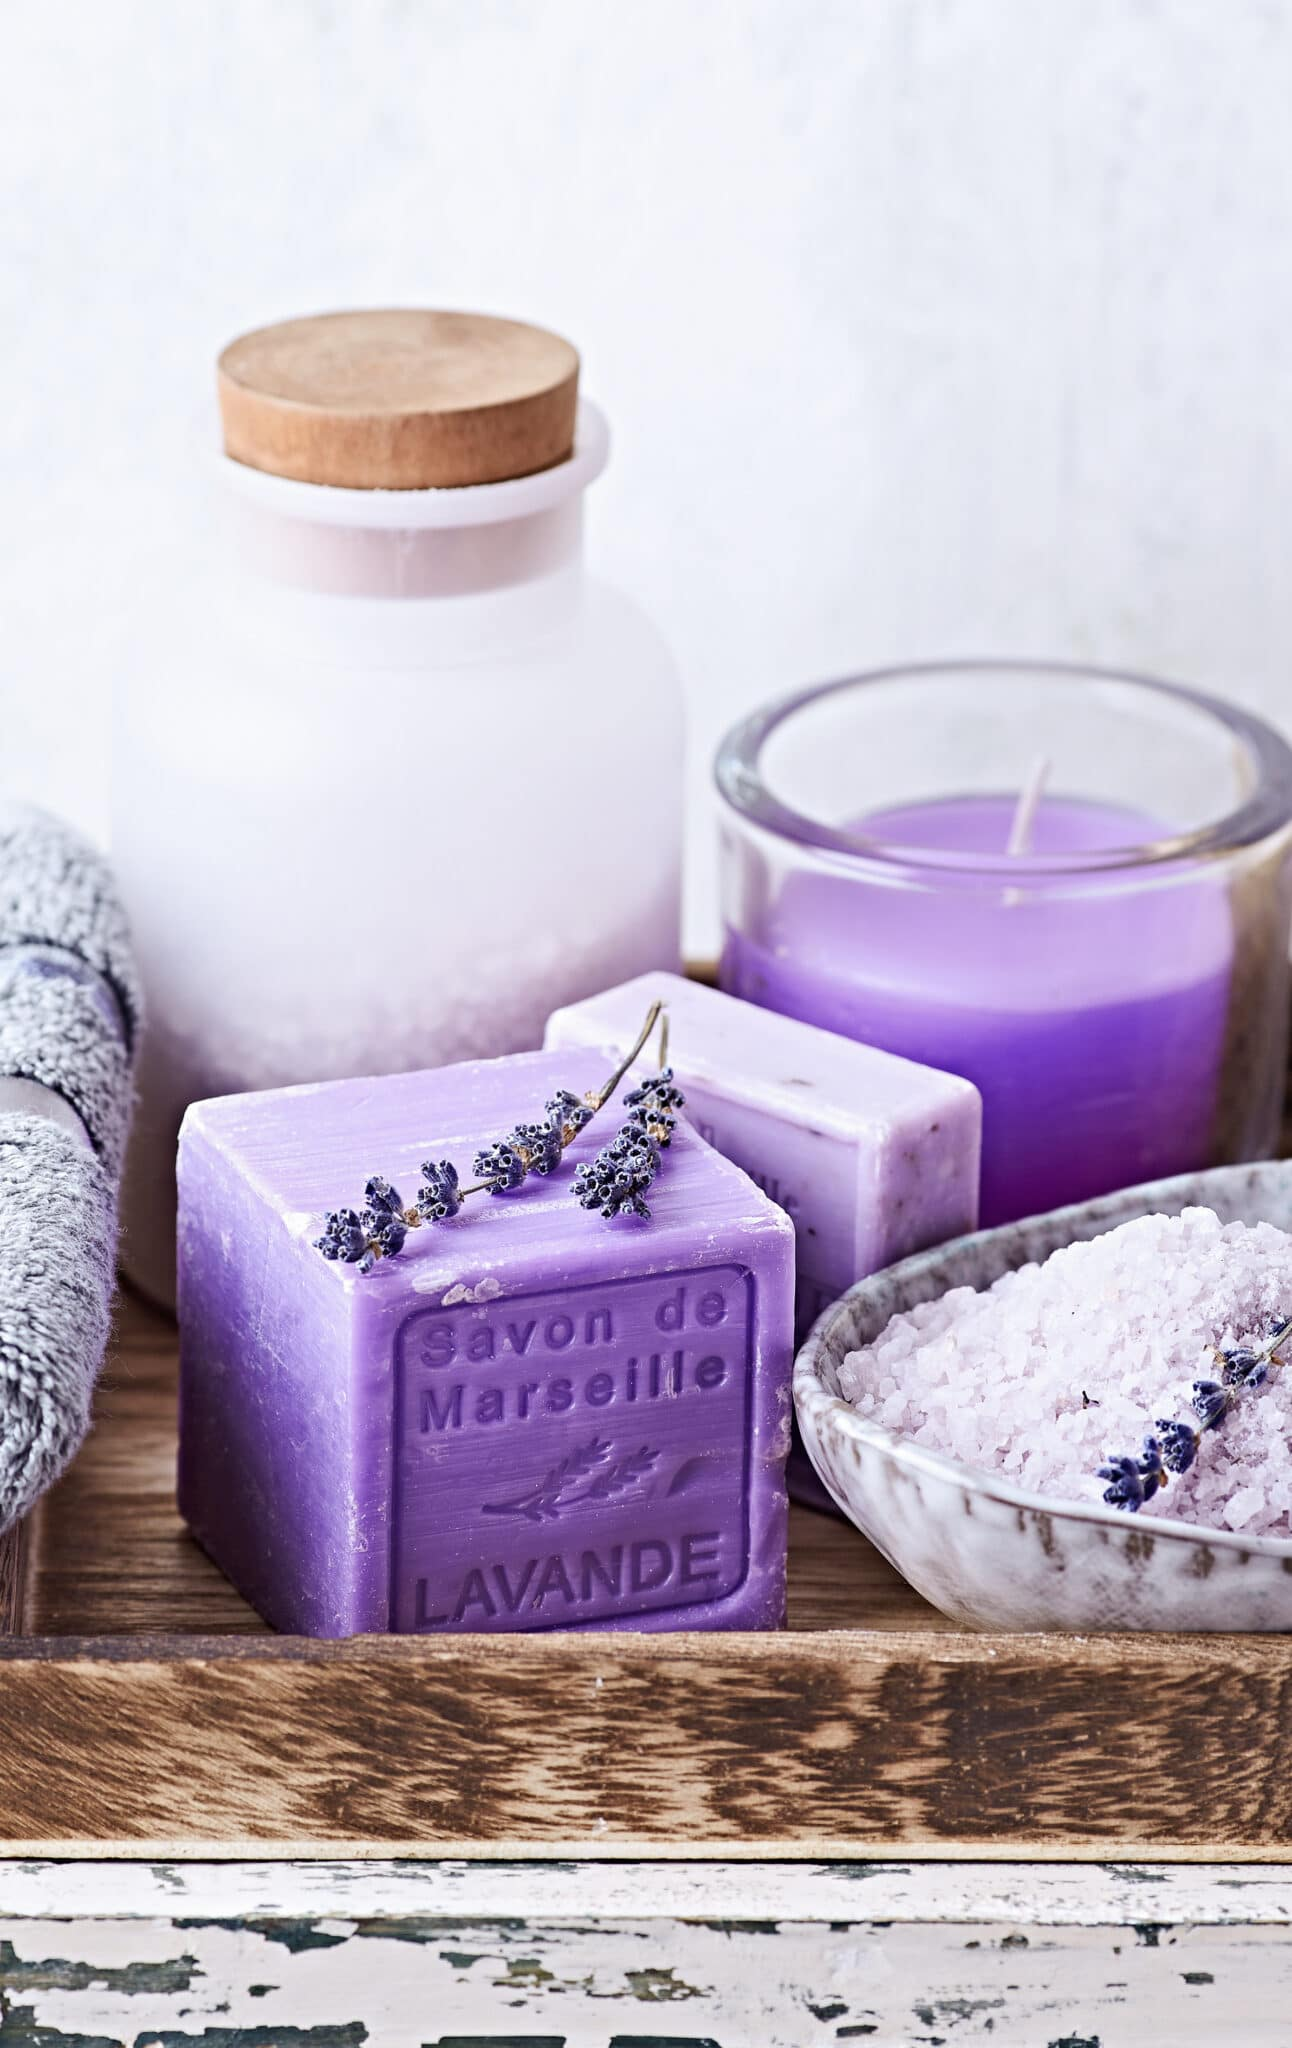 Lavender soap and bath salts with a lavender candle on a rustic wooden tray.